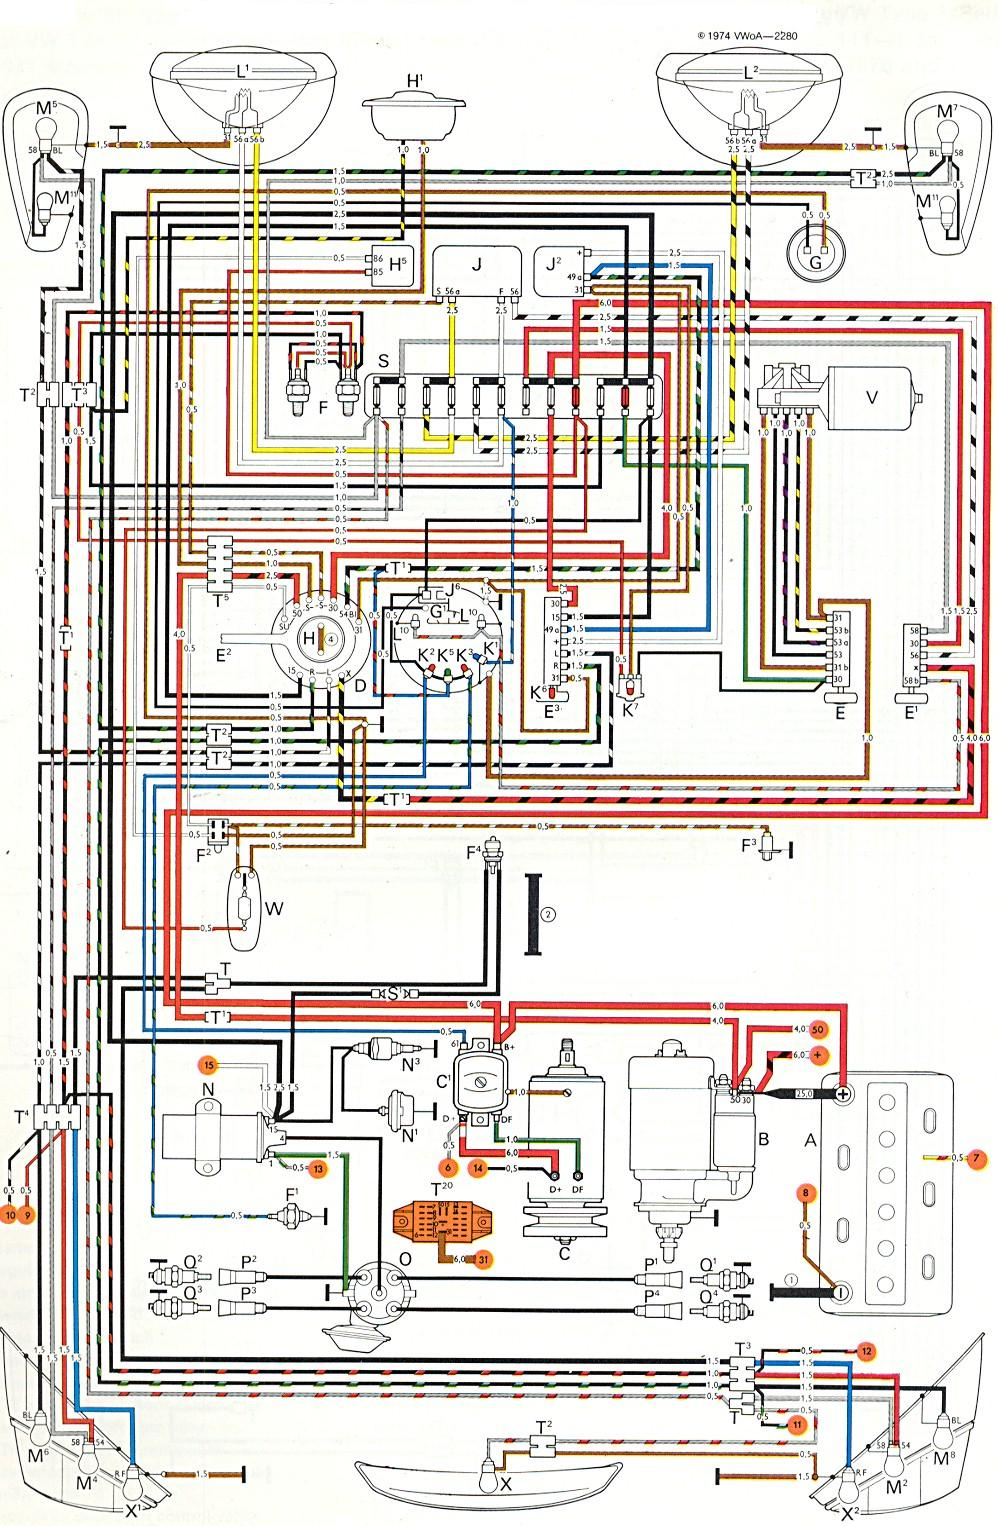 72 vw wiring diagram wiring diagram third level volkswagen super beetle wiring diagram 4 best images of 72 vw beetle wiring diagram [ 999 x 1526 Pixel ]